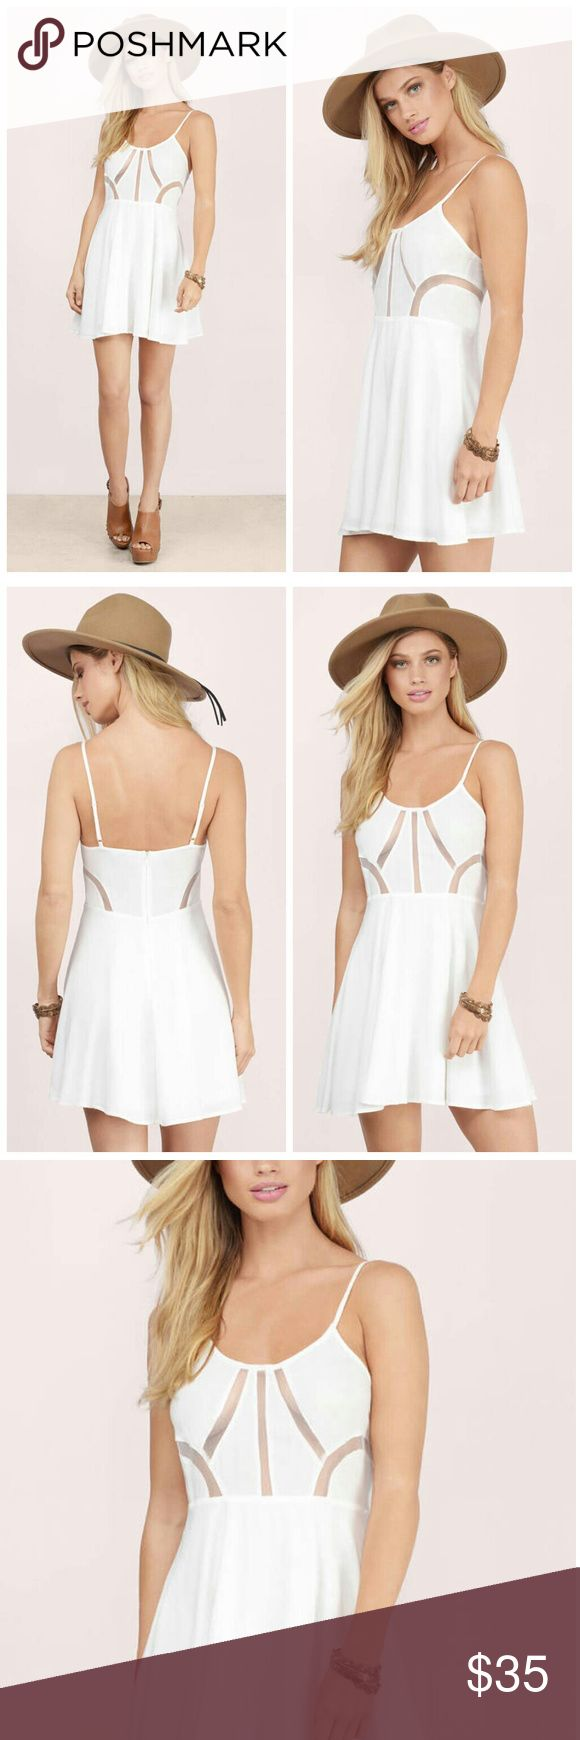 "Ivory Mesh cut out skater dress Ivory mesh skater dress with cut out designs.   Rayon (Self)Polyester (Lining & Contrast)ImportedDry Flatl  Waist: 25""/63.5cm Length: 31""/78.7cm Adjustable straps Back zipper closure Boutique Dresses Mini"